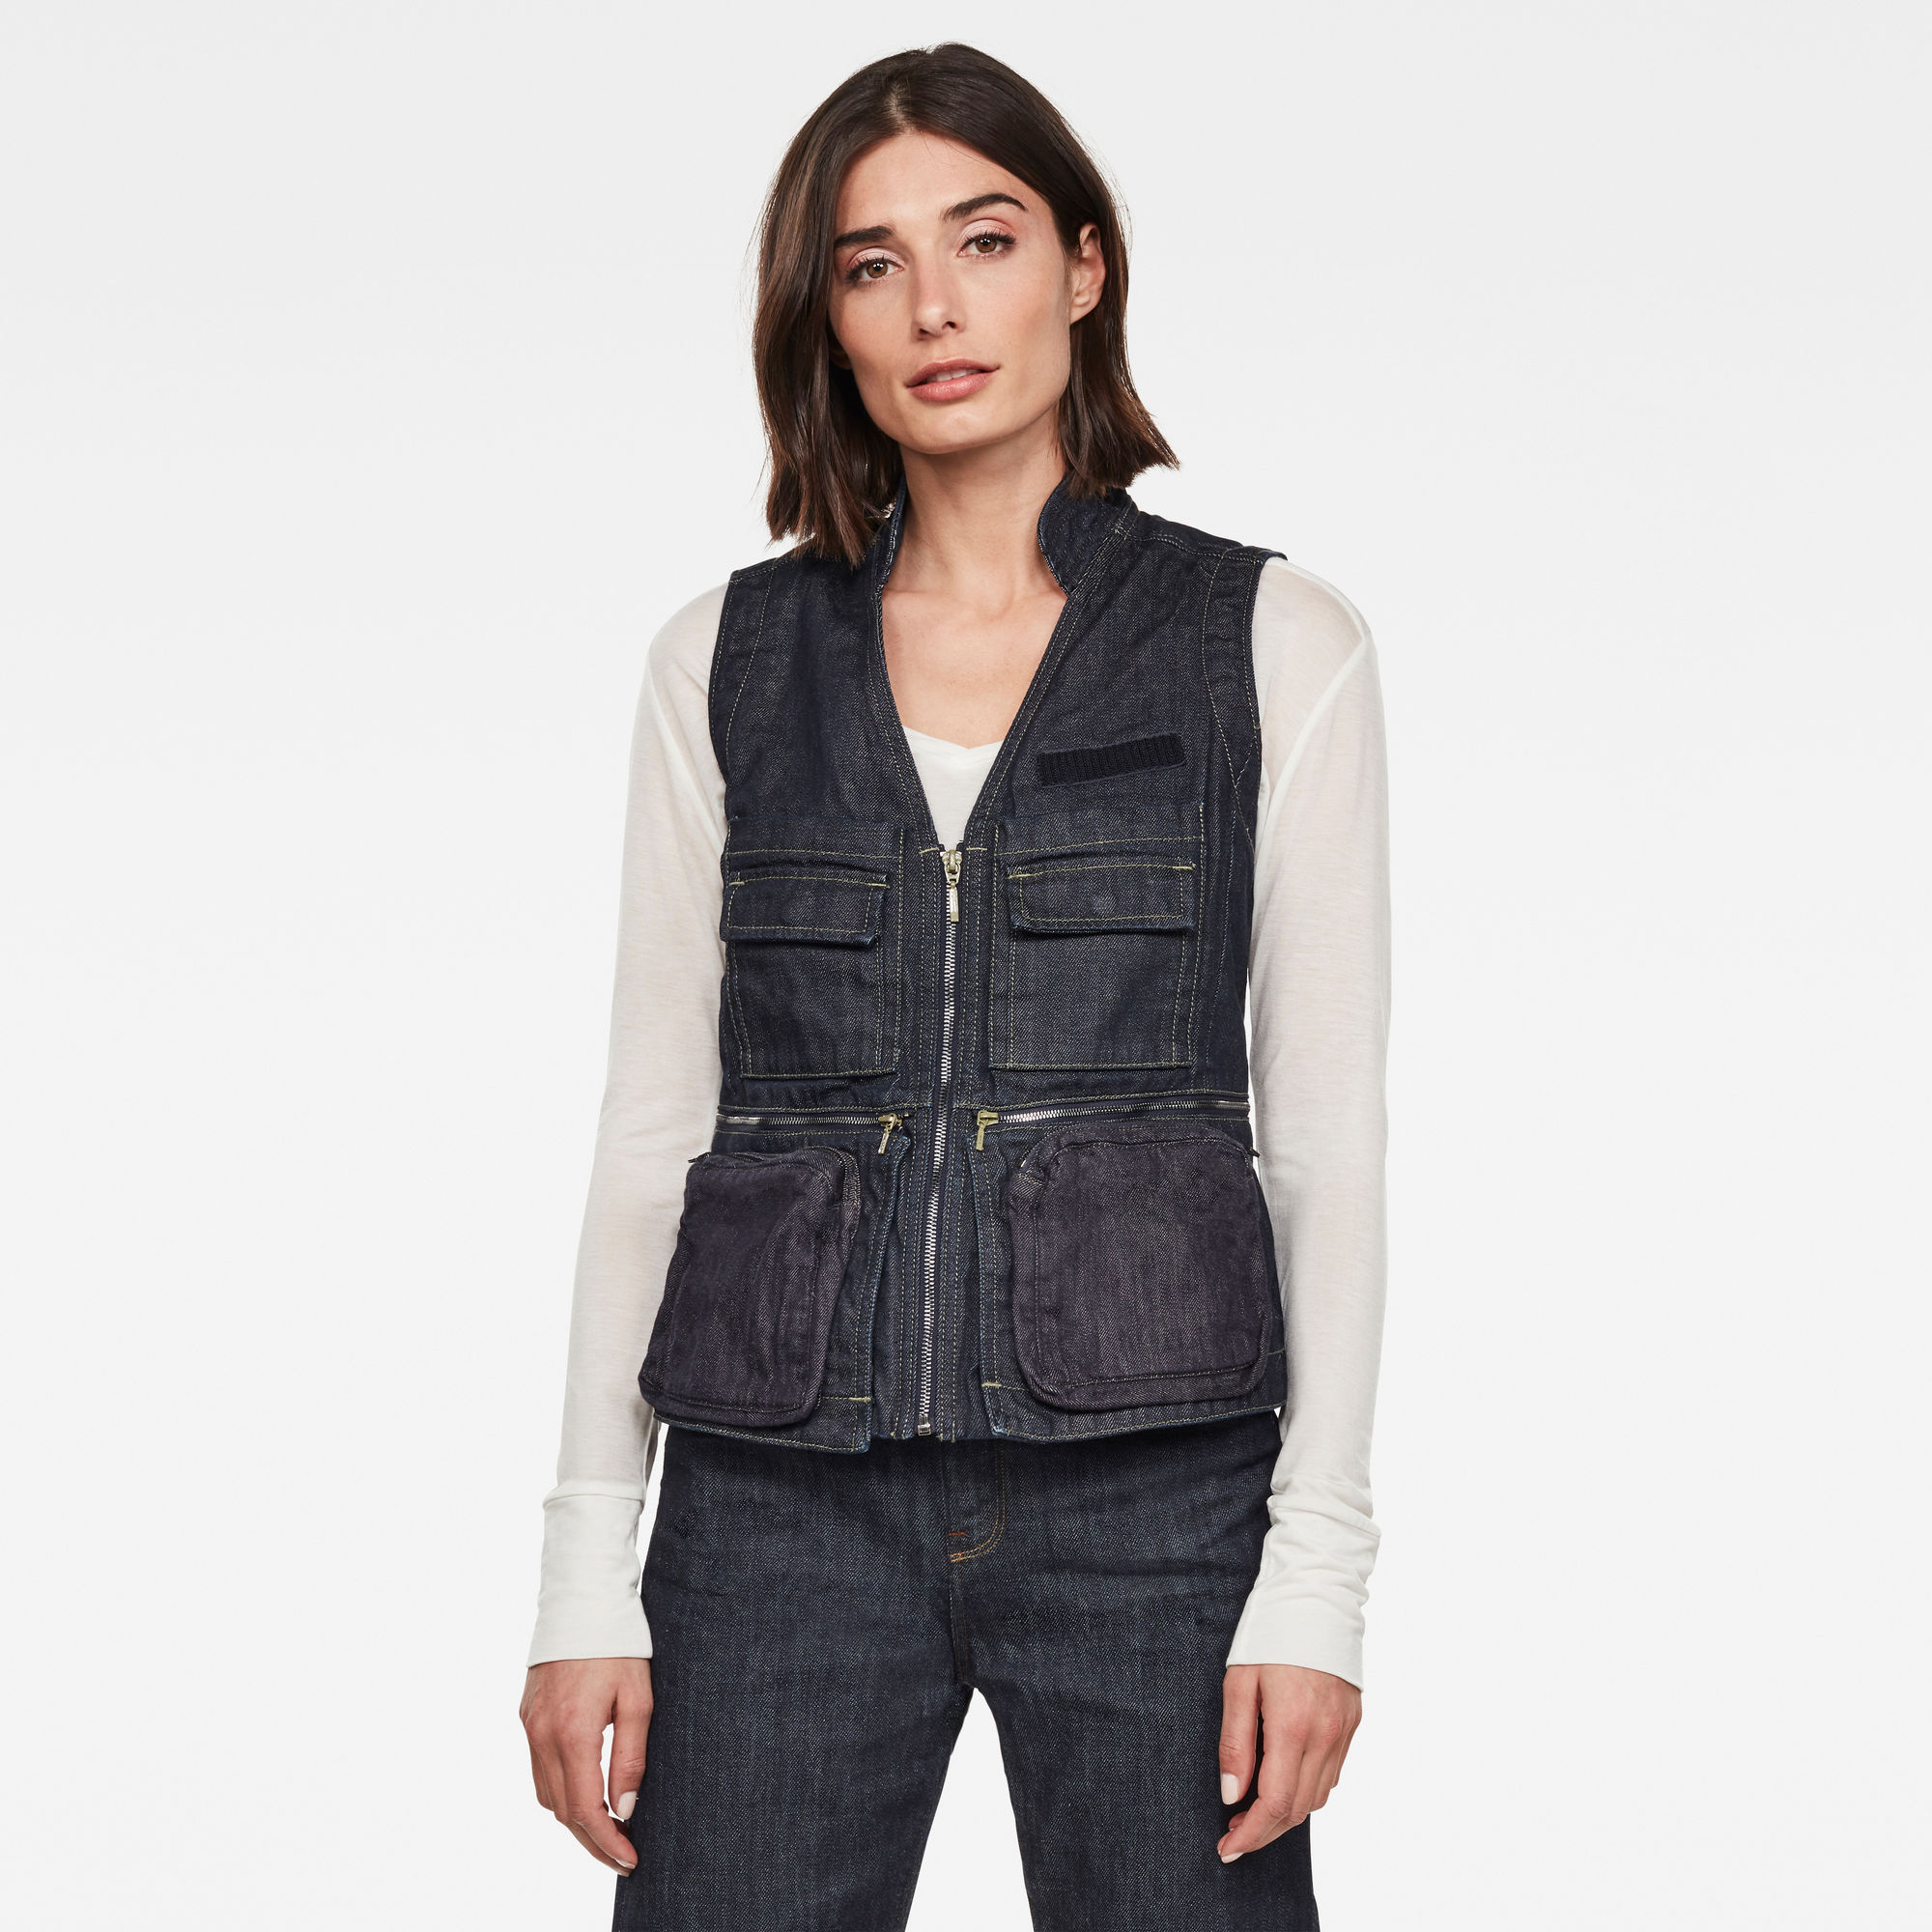 G-Star RAW Dames GSRR Hito Gilet Donkerblauw